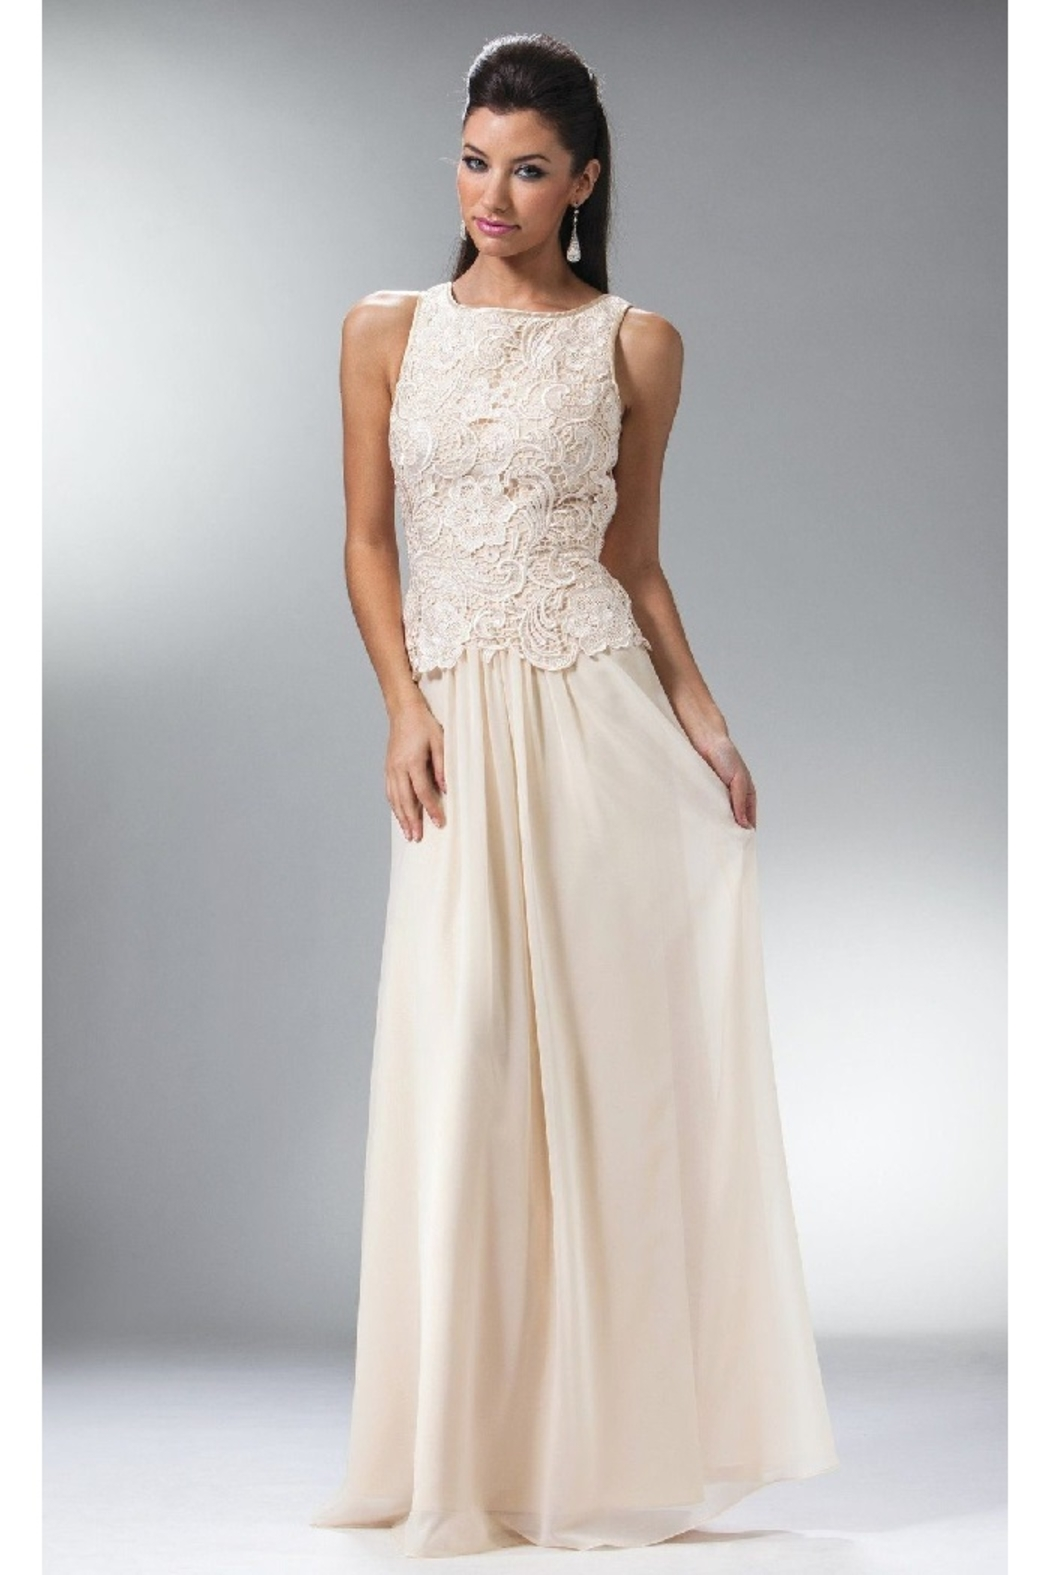 Cinderella Divine Champagne Lace Top Long Formal Dress - Main Image